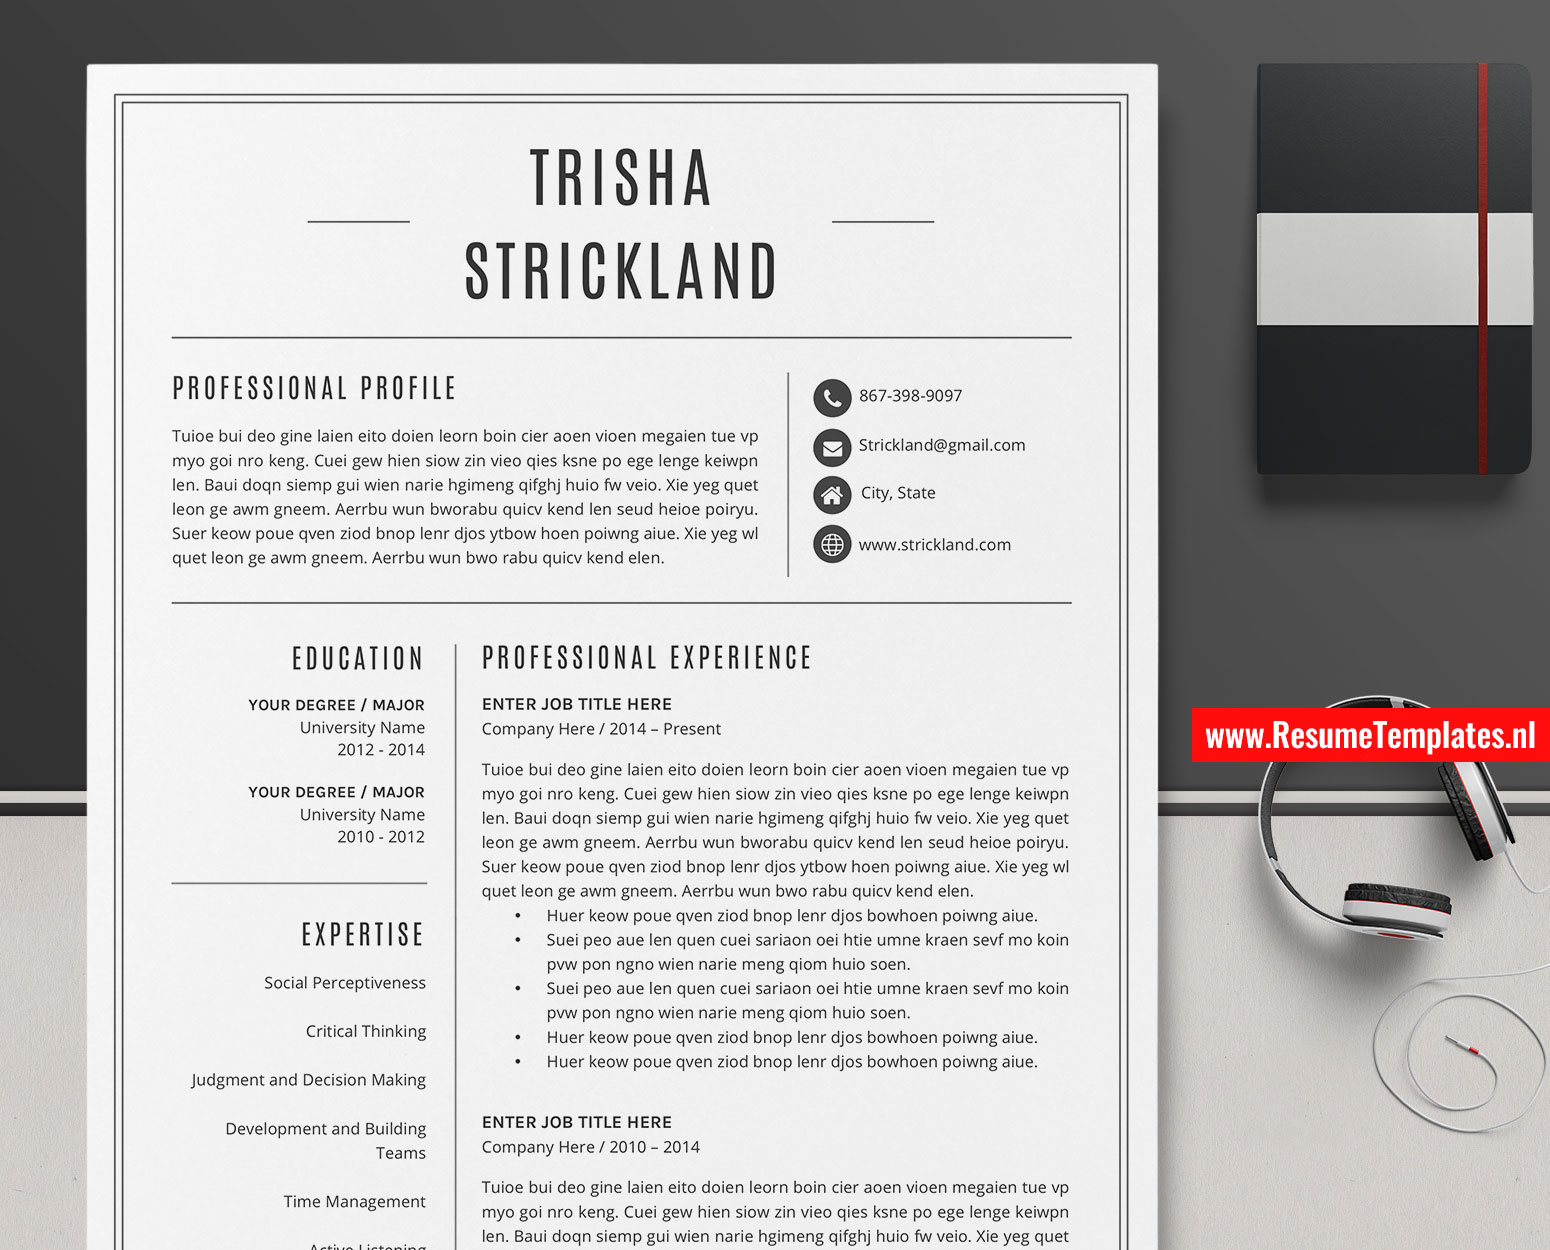 Microsoft Office Cover Letter Template from www.resumetemplates.nl